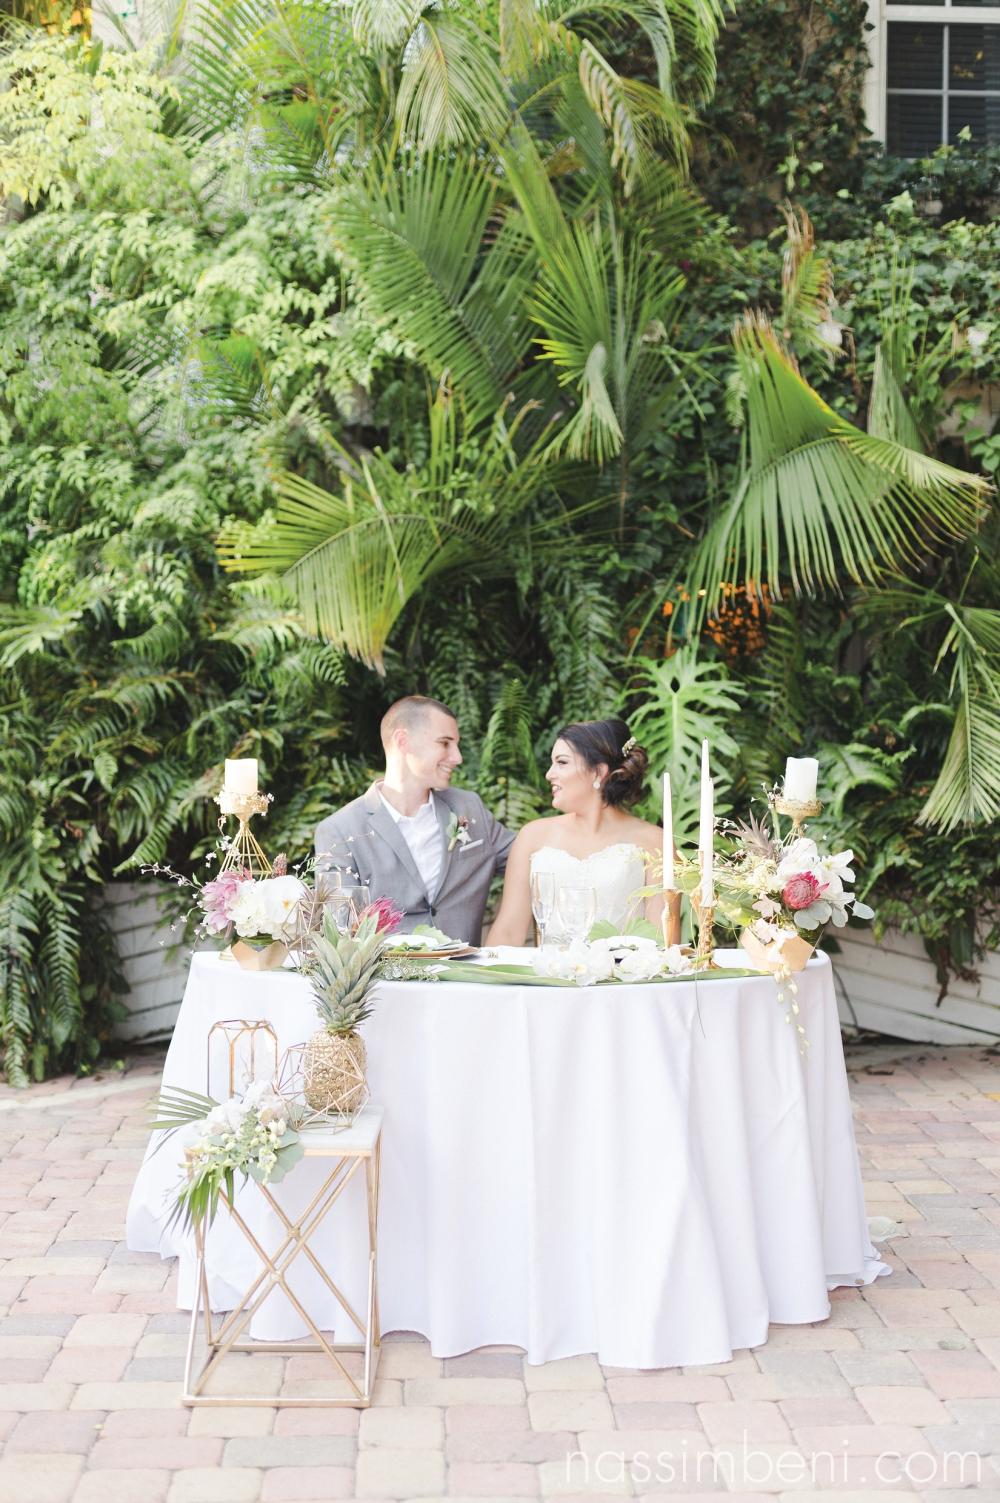 gold-and-geometric-tropical-wedding-inspiration-florida-destination-wedding-port-st-lucie-wedding-photographer-23